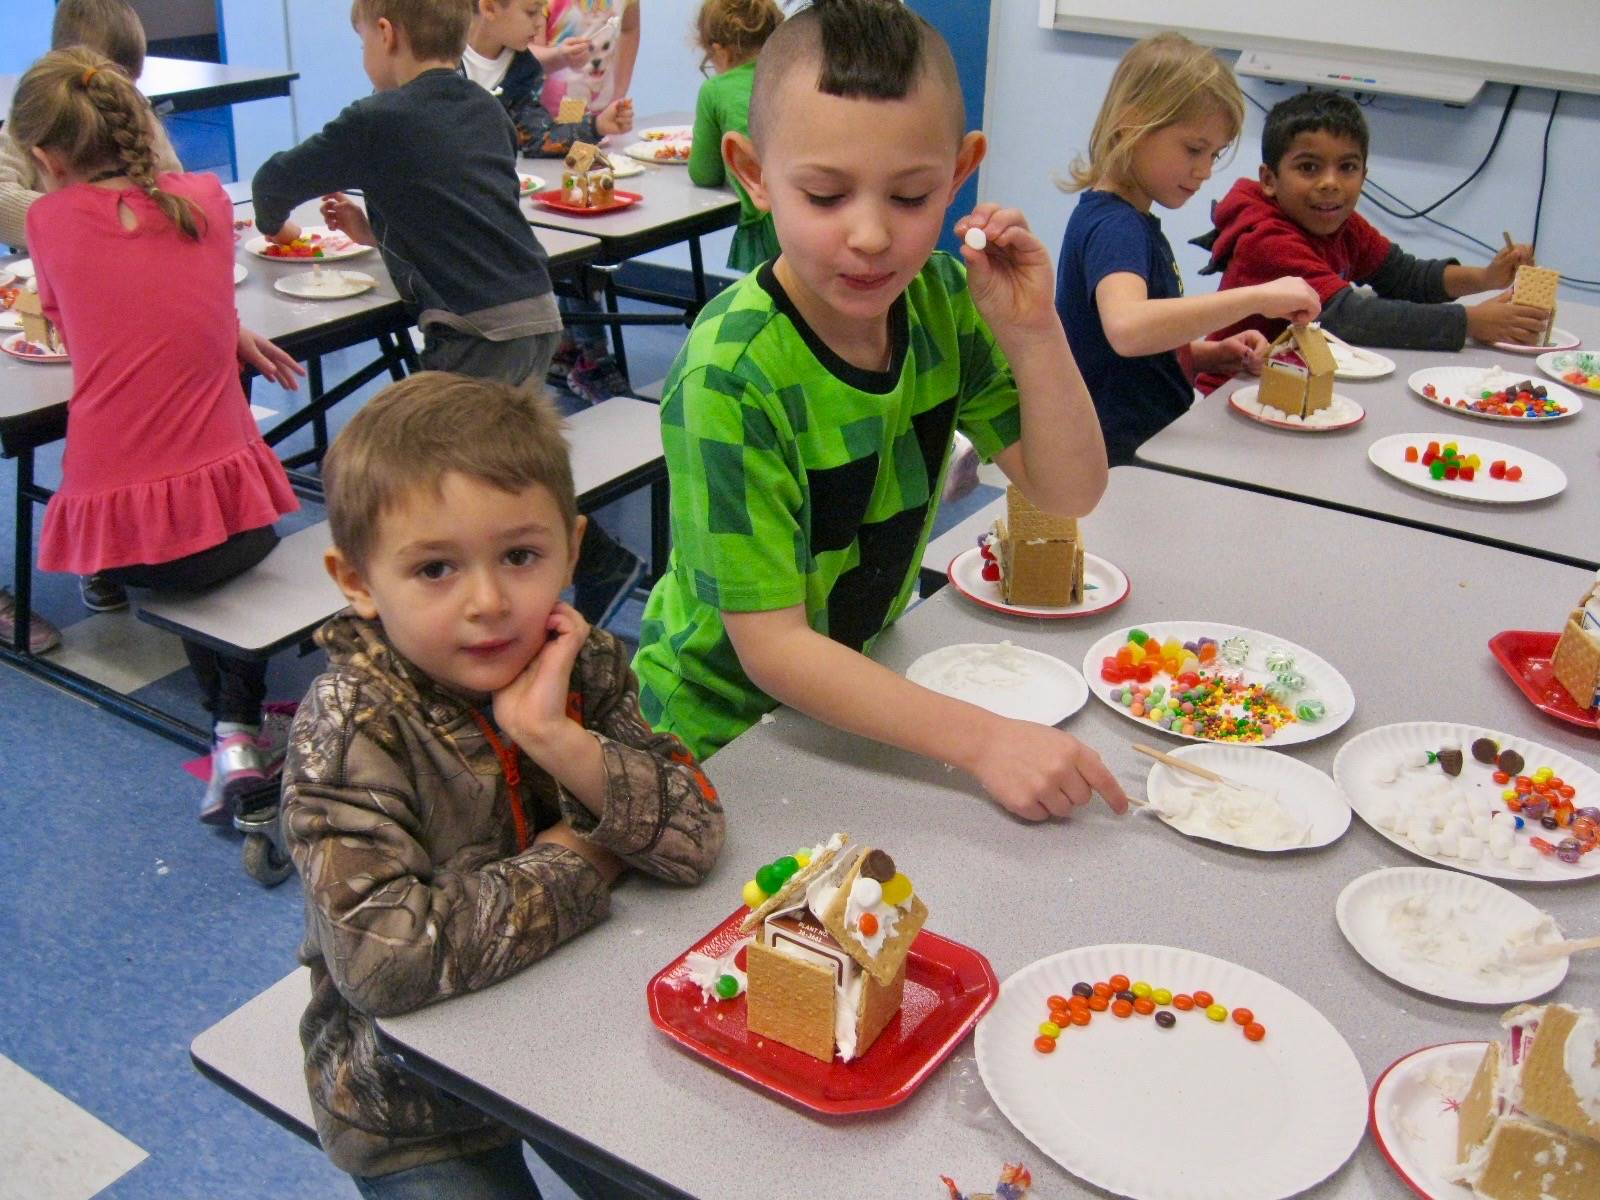 2 students show off gingerbread houses.